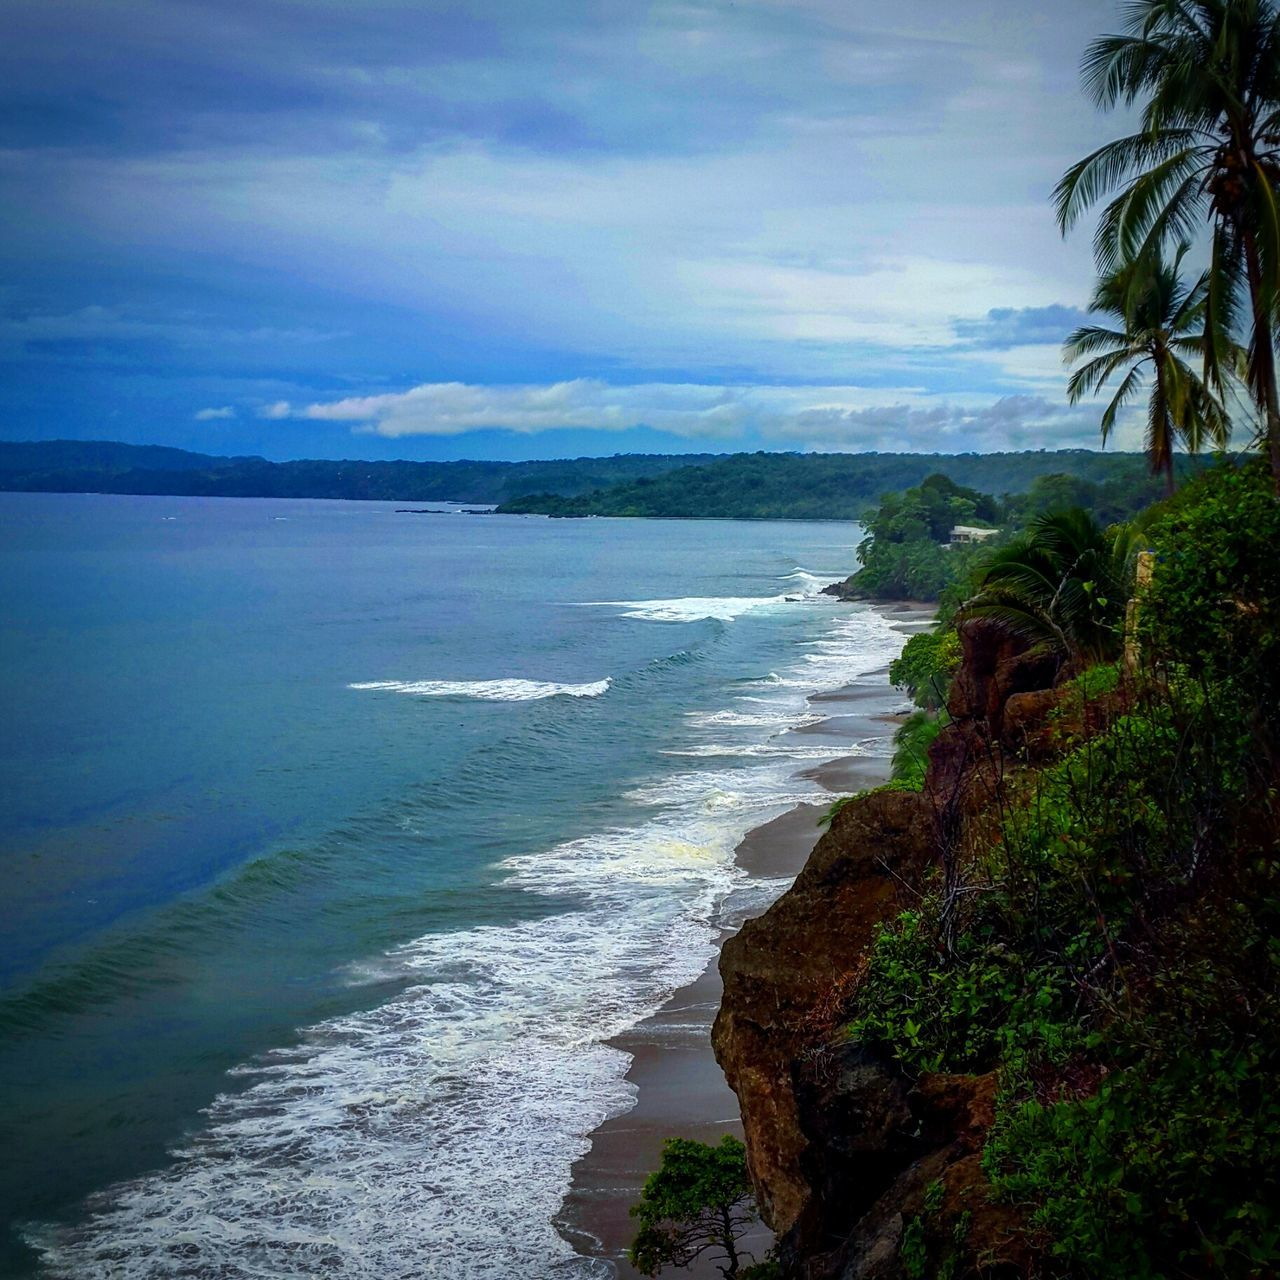 Costa Rica Travel Photography Luxurylifestyle  Feel The Journey Colorful Afar Travel Vibrant The Great Outdoors - 2016 EyeEm Awards Great Outdoors Earthporn Tan Green